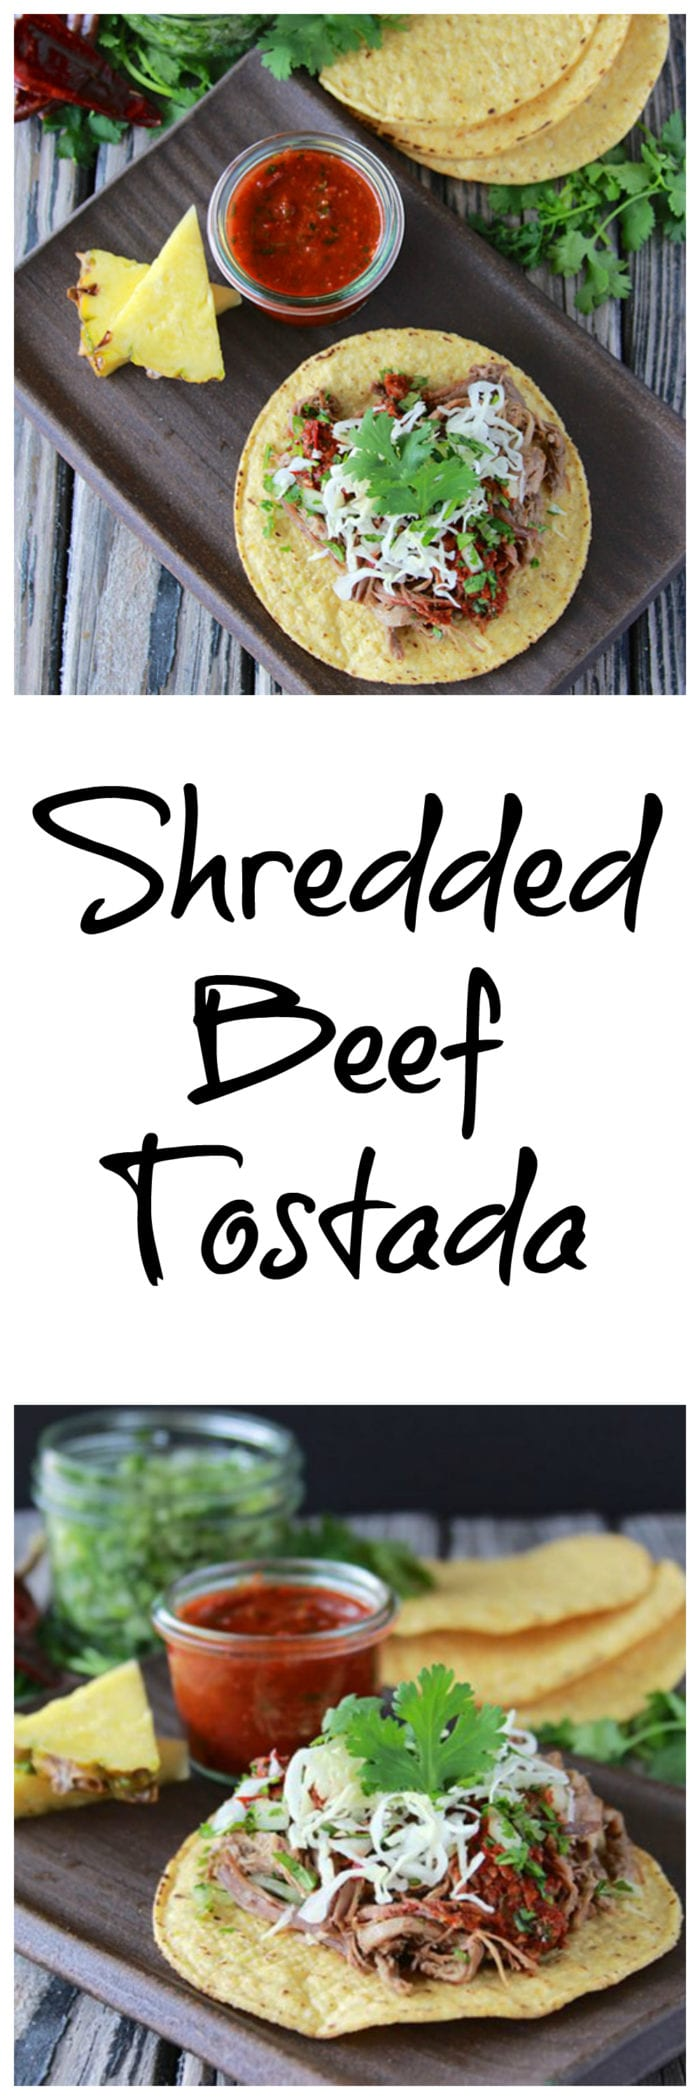 Shredded Beef Tostada is a filling and festive week night dinner. . . it's one that is sure to please the whole family!www.cookingwithruthie.com